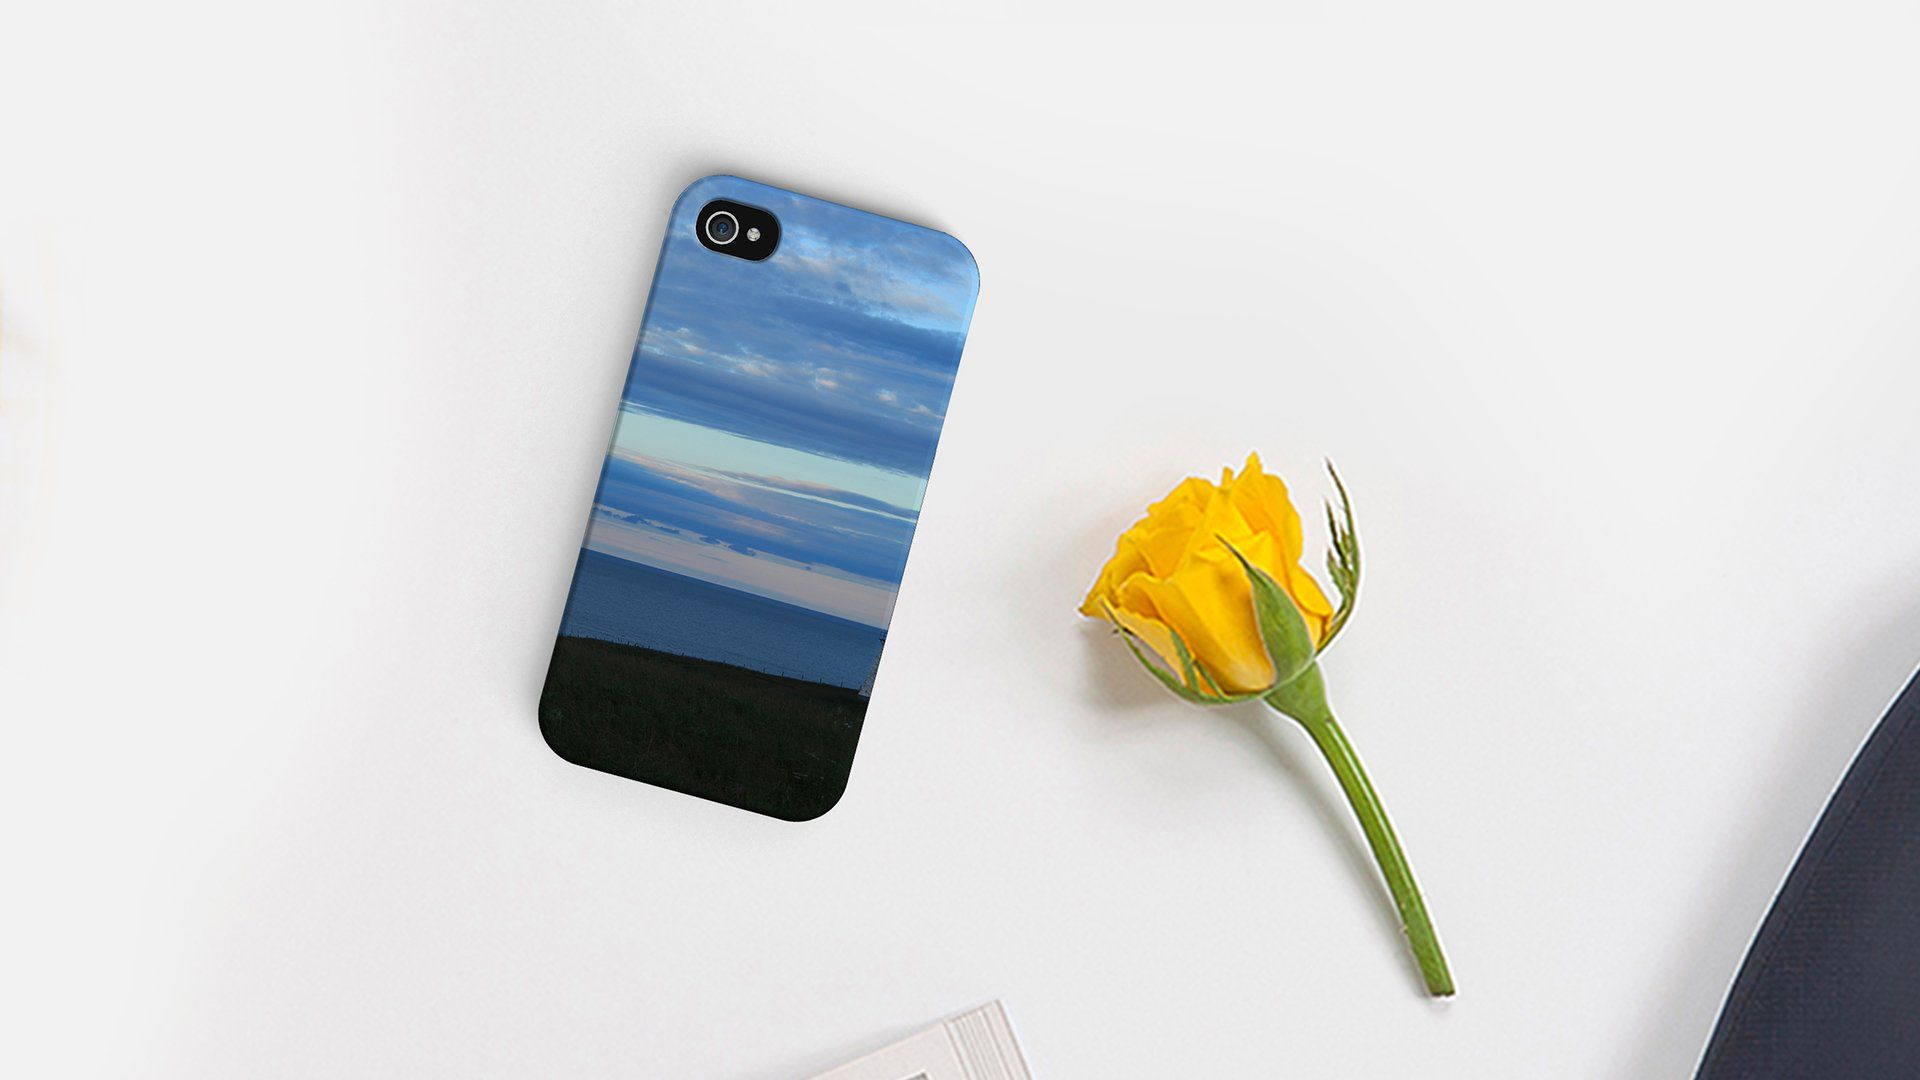 Here's a beautiful example of the Print Shops option to have custom imagery added to snap cases.